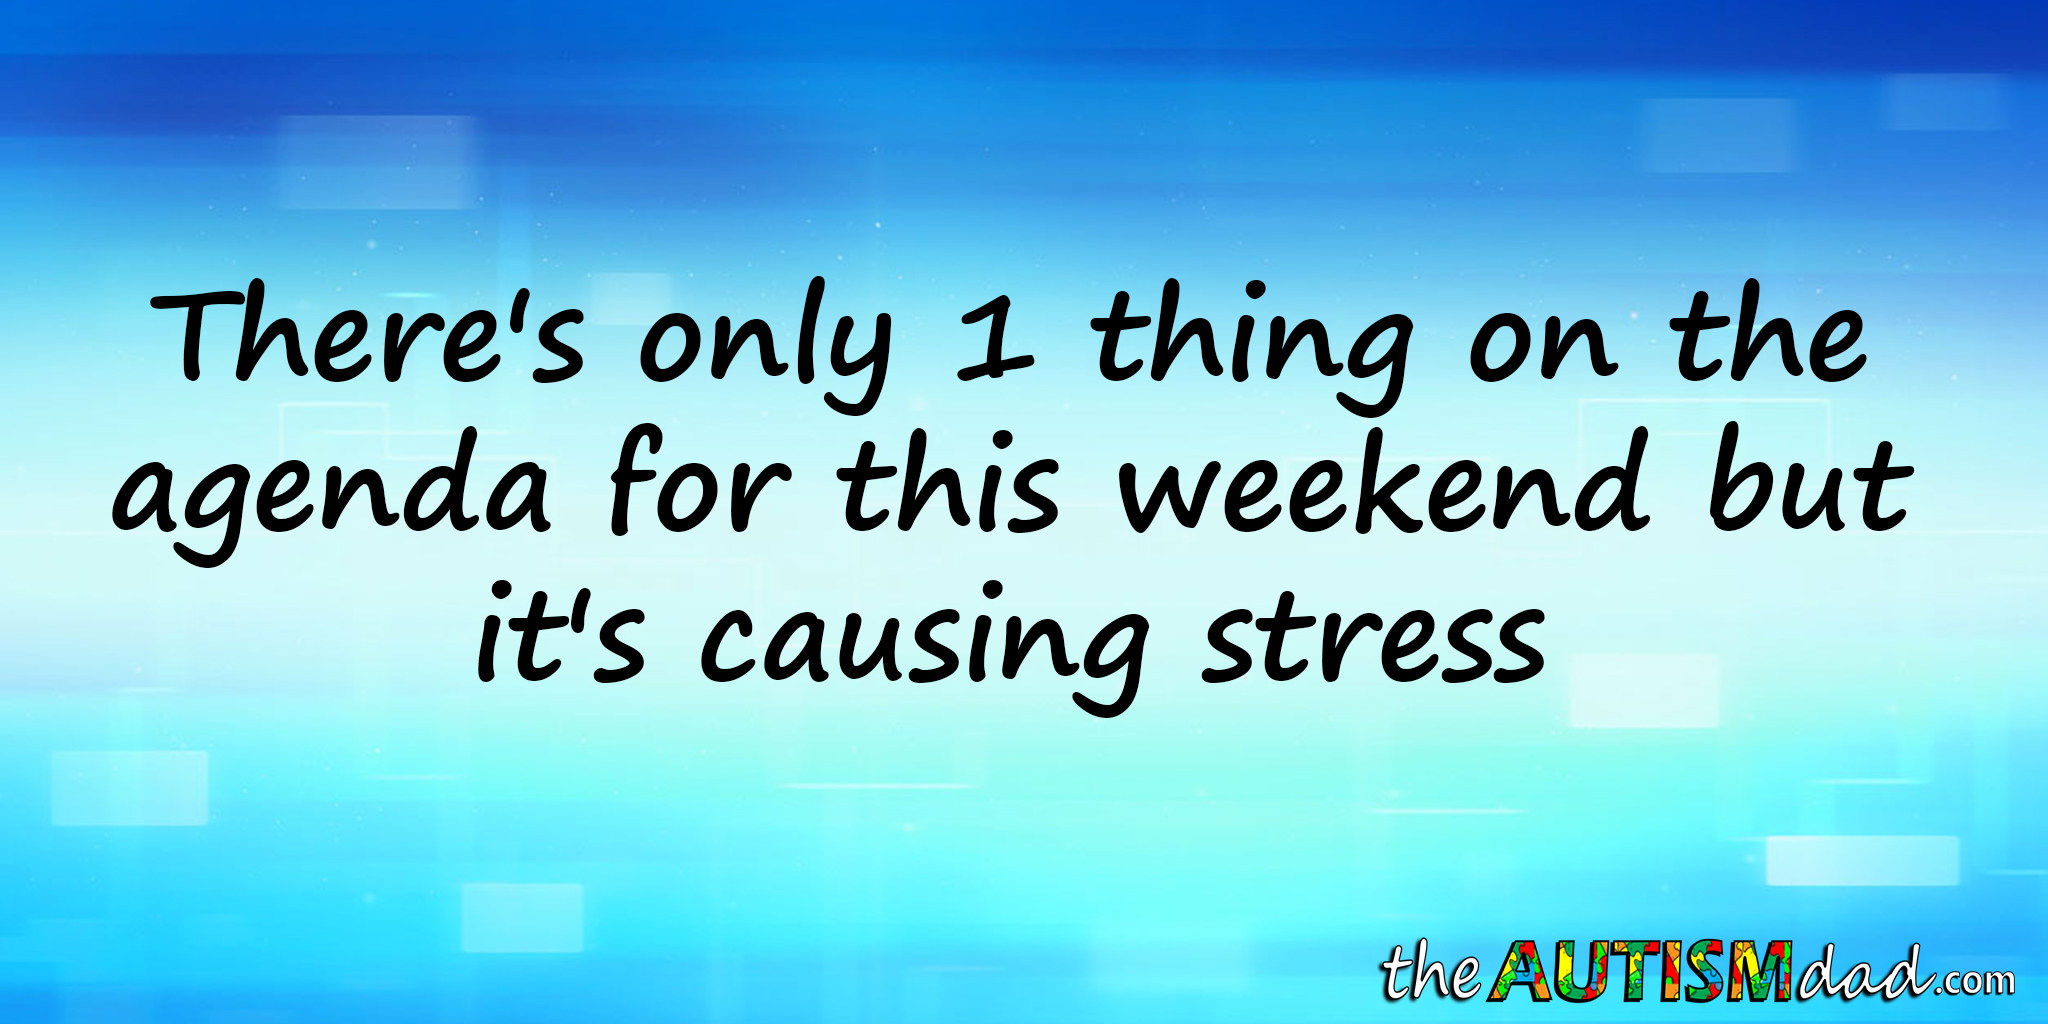 There's only 1 thing on the agenda for this weekend but it's causing stress